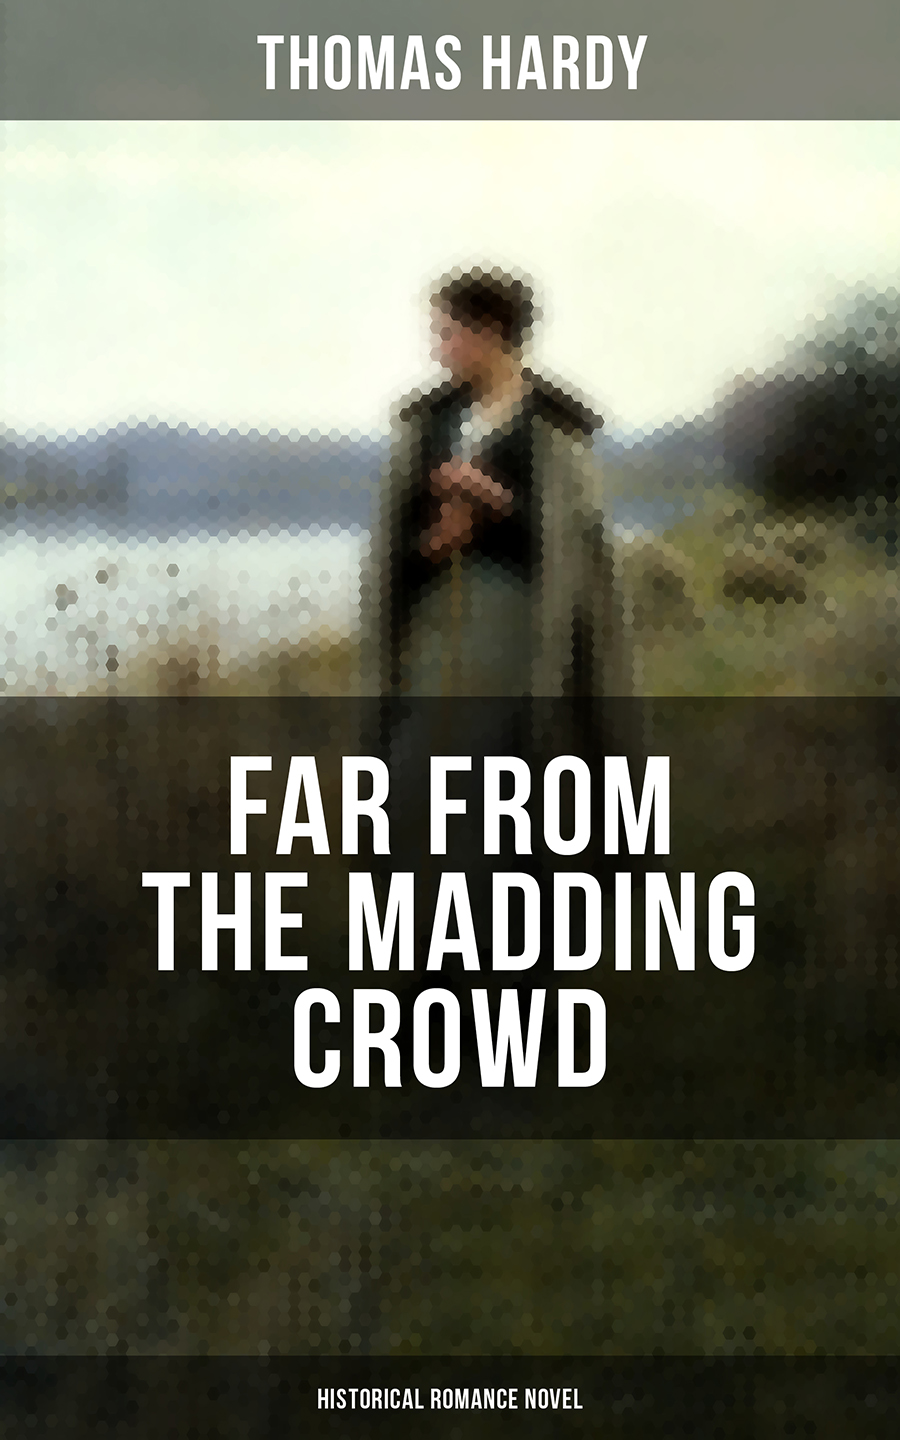 far from the madding crowd historical romance novel